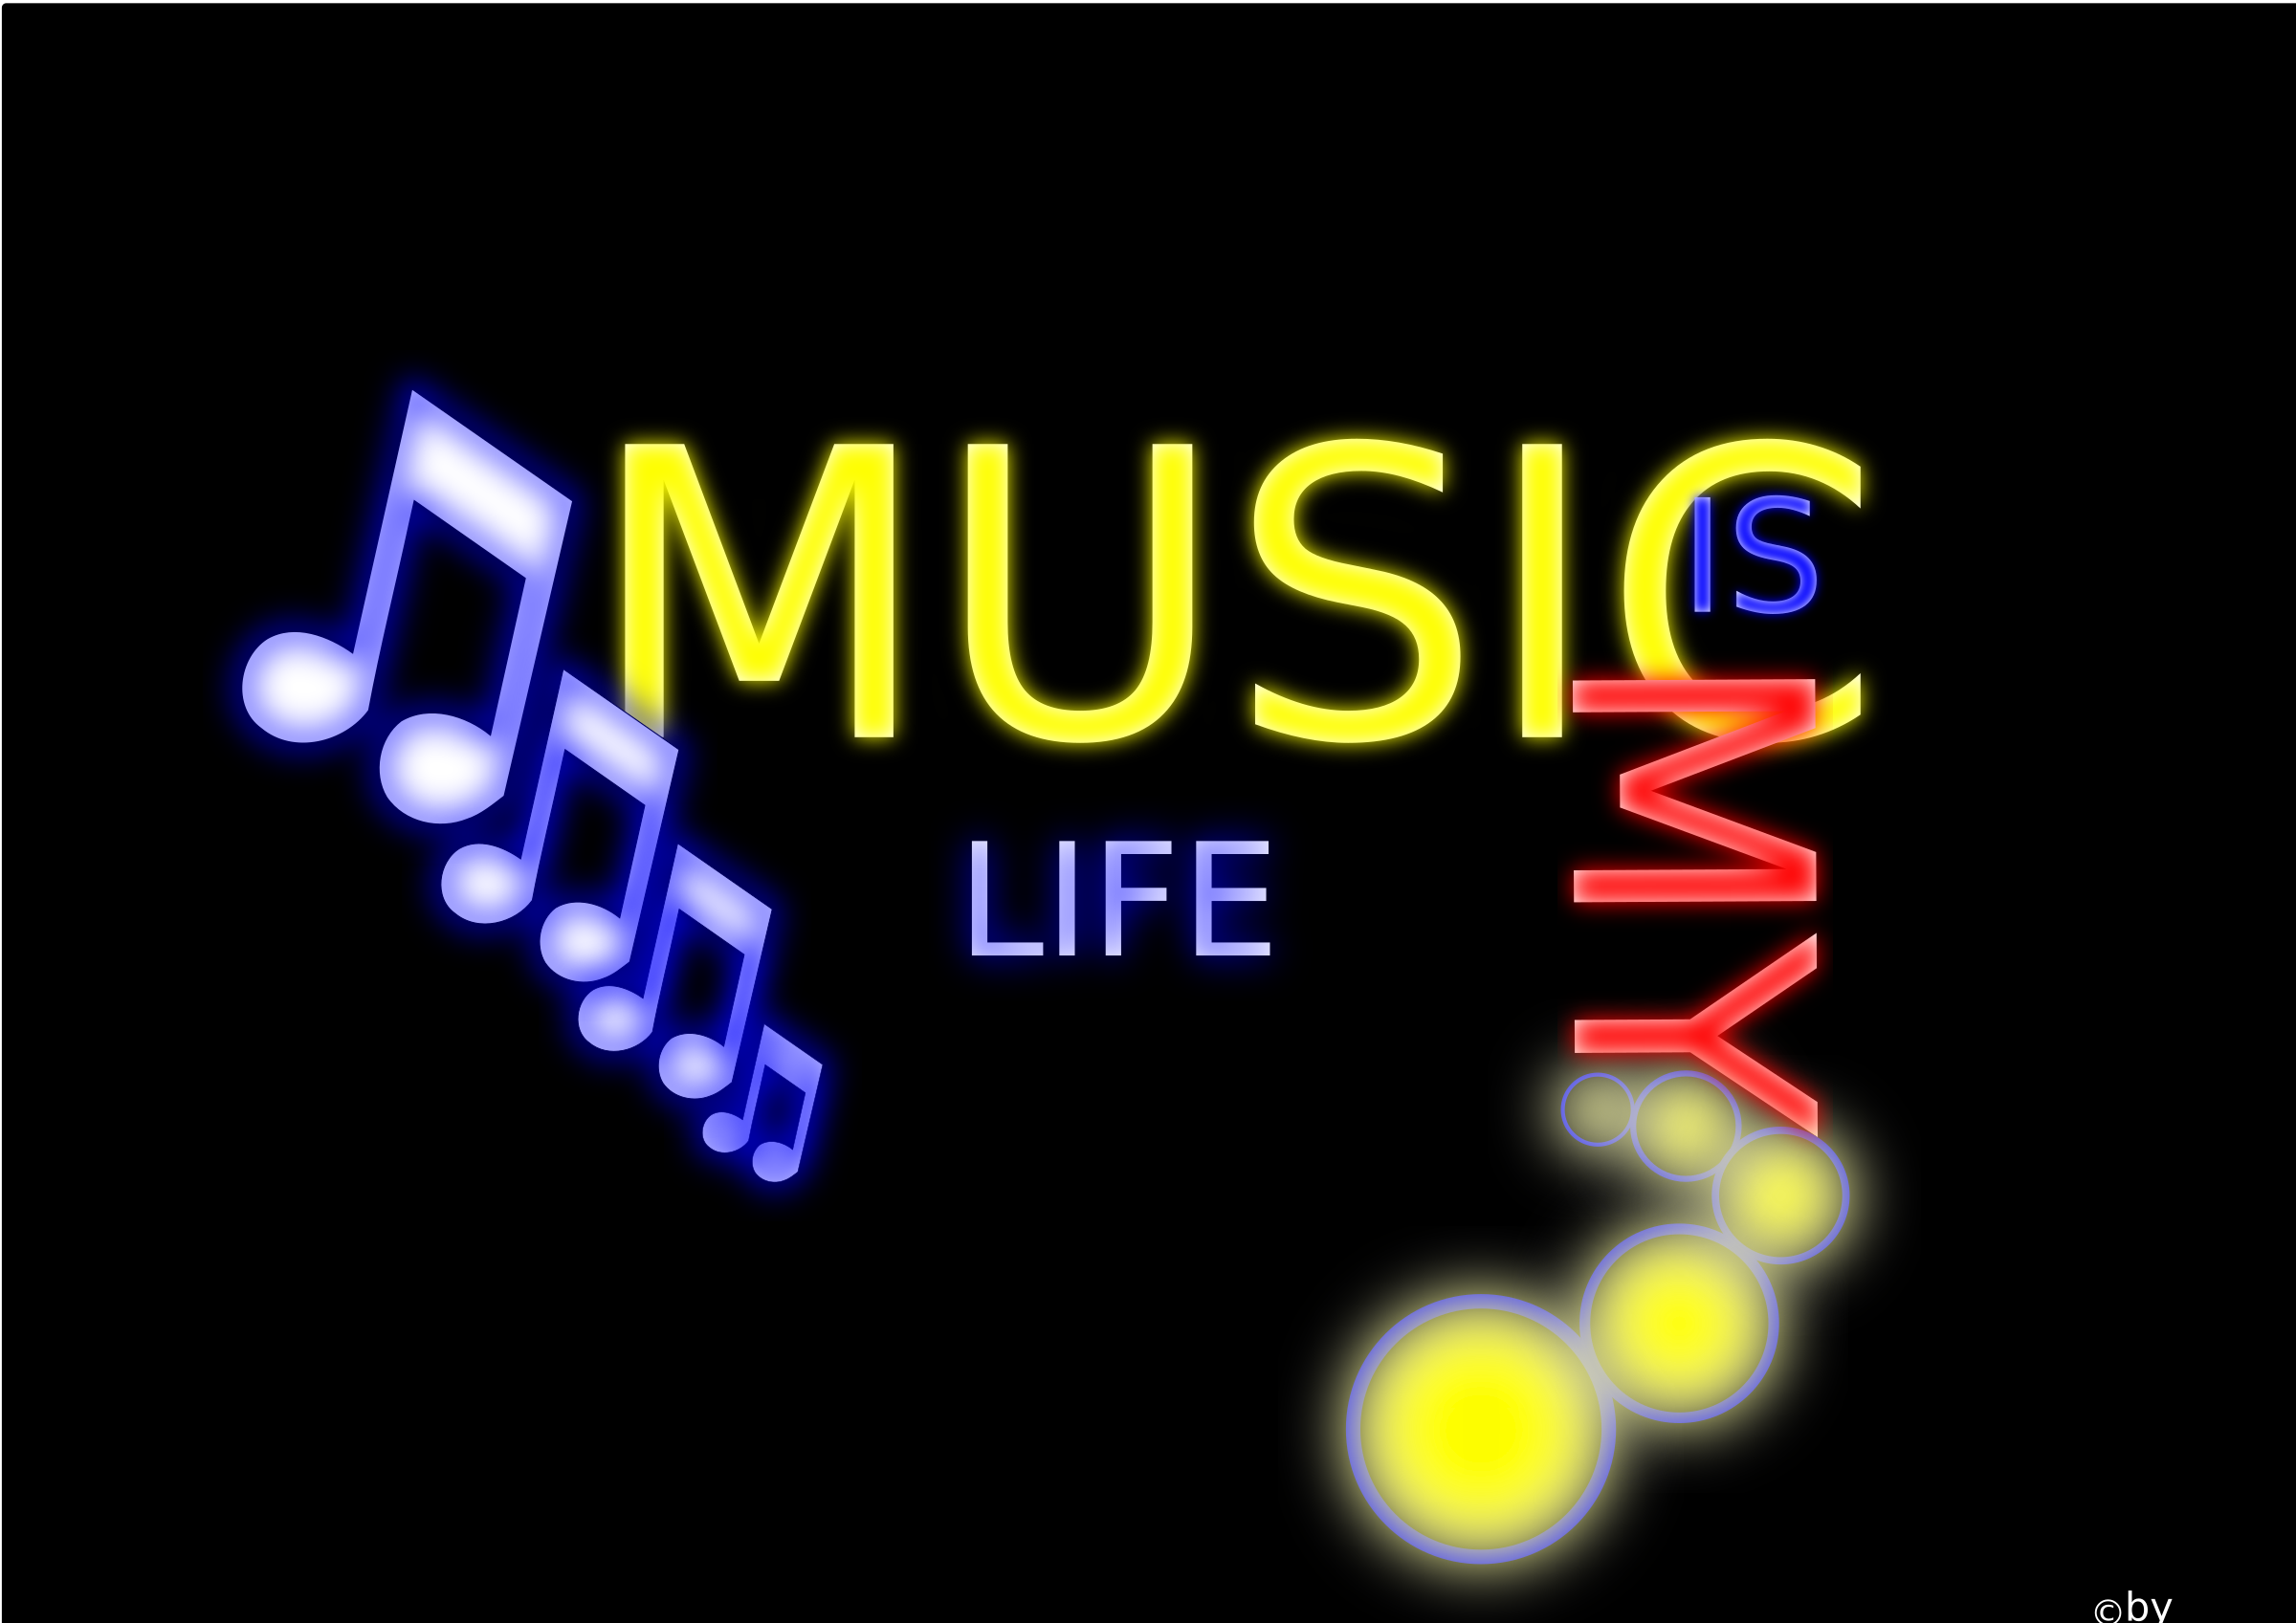 MUSIC IS MY LIFE by raptor